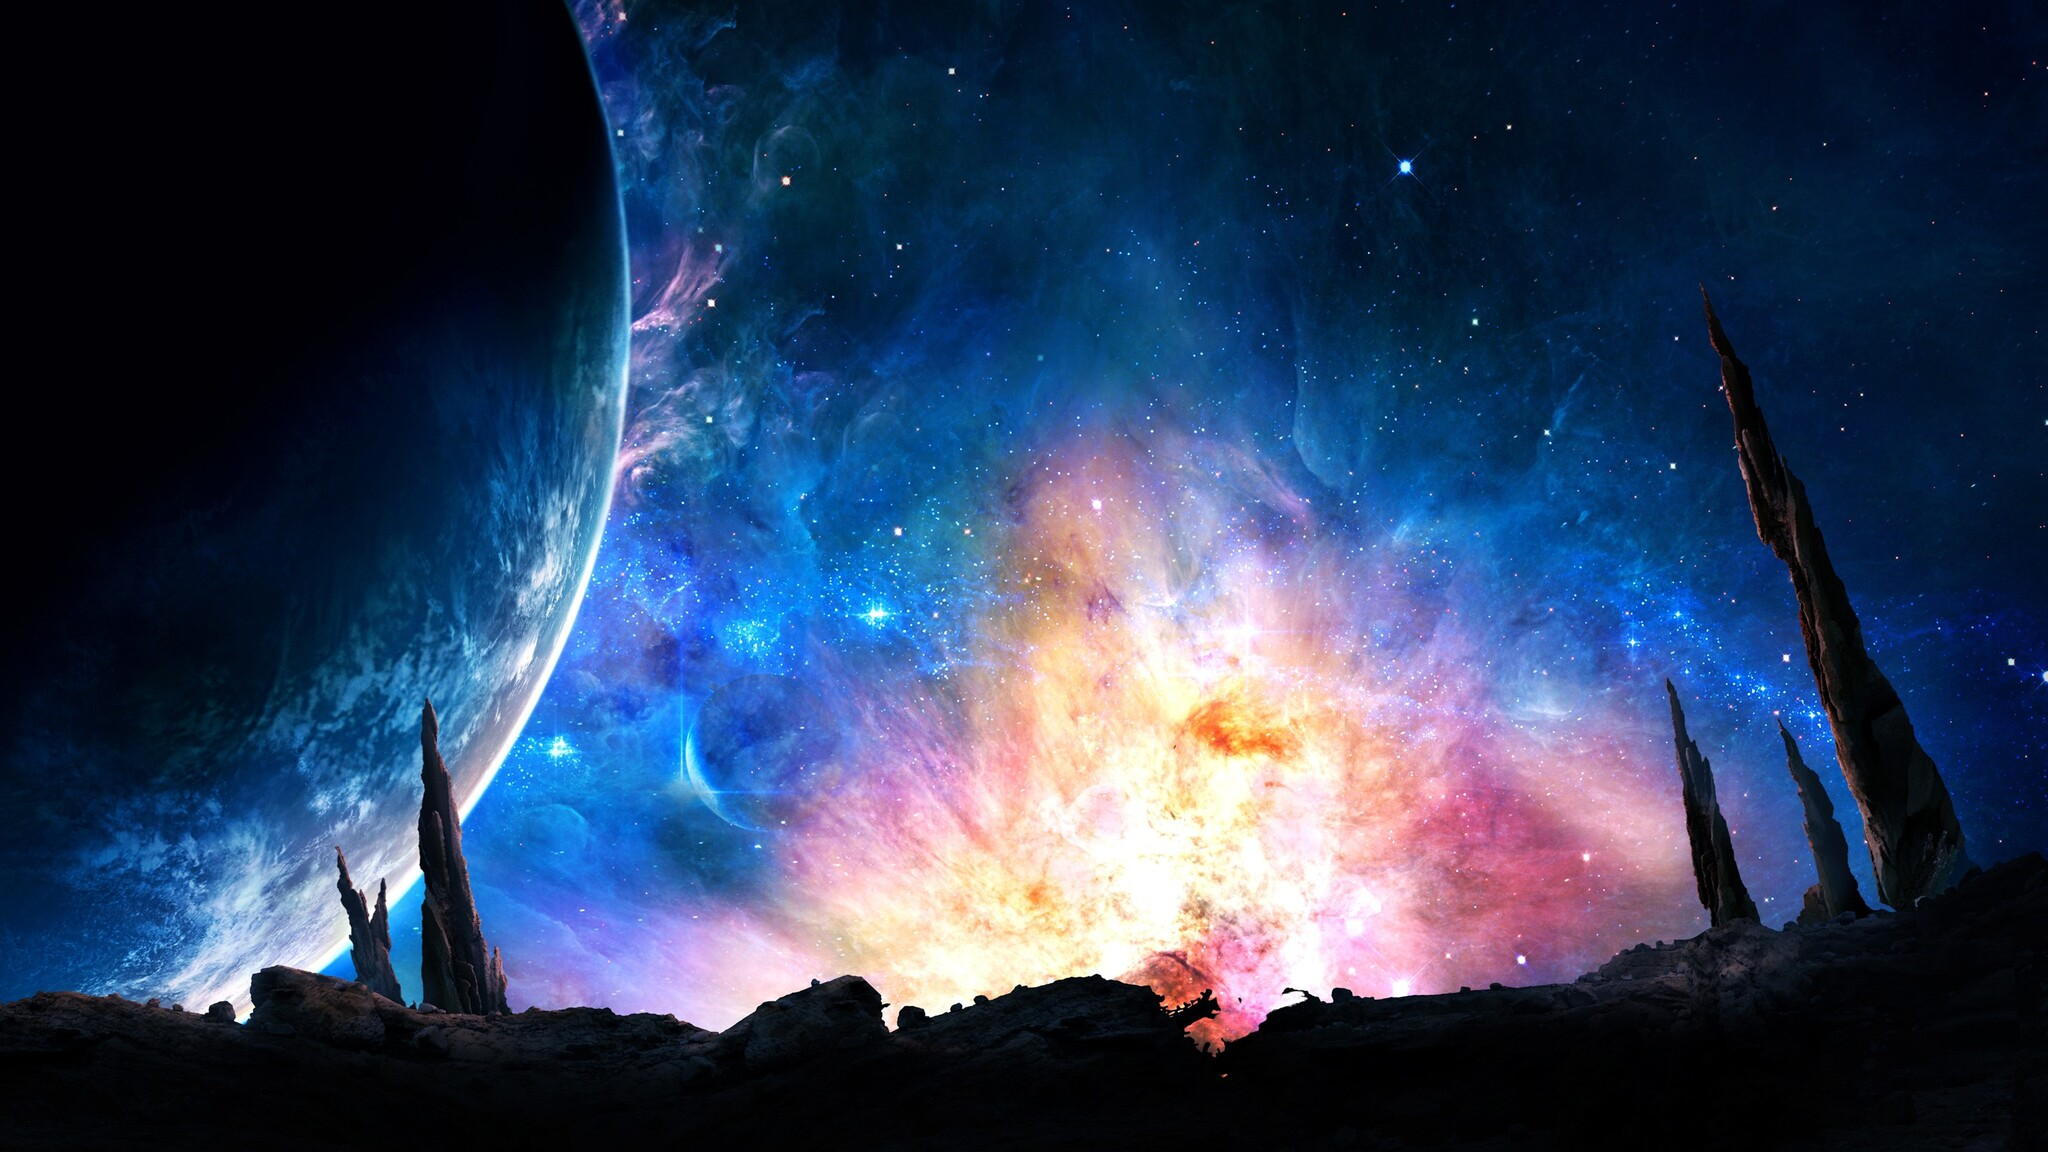 2048x1152 galaxy digital universe 2048x1152 resolution hd 4k wallpapers images backgrounds - Galaxy wallpaper for girls ...